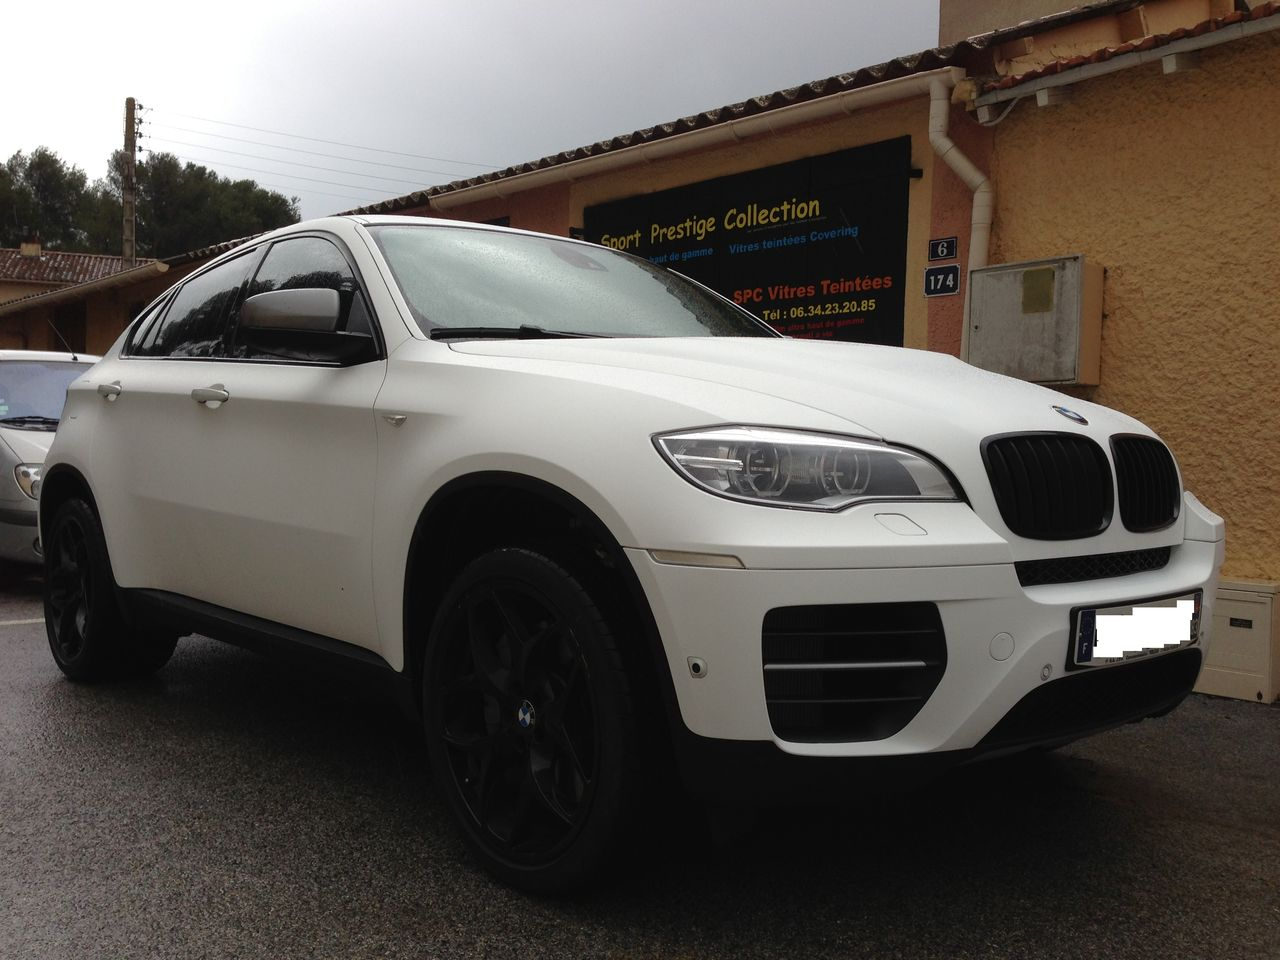 bmw x6 blanc bi em doub u bmw x6 blanc x6 blanc avec jantes ferricgrey page 2 forum ma bmw x6. Black Bedroom Furniture Sets. Home Design Ideas